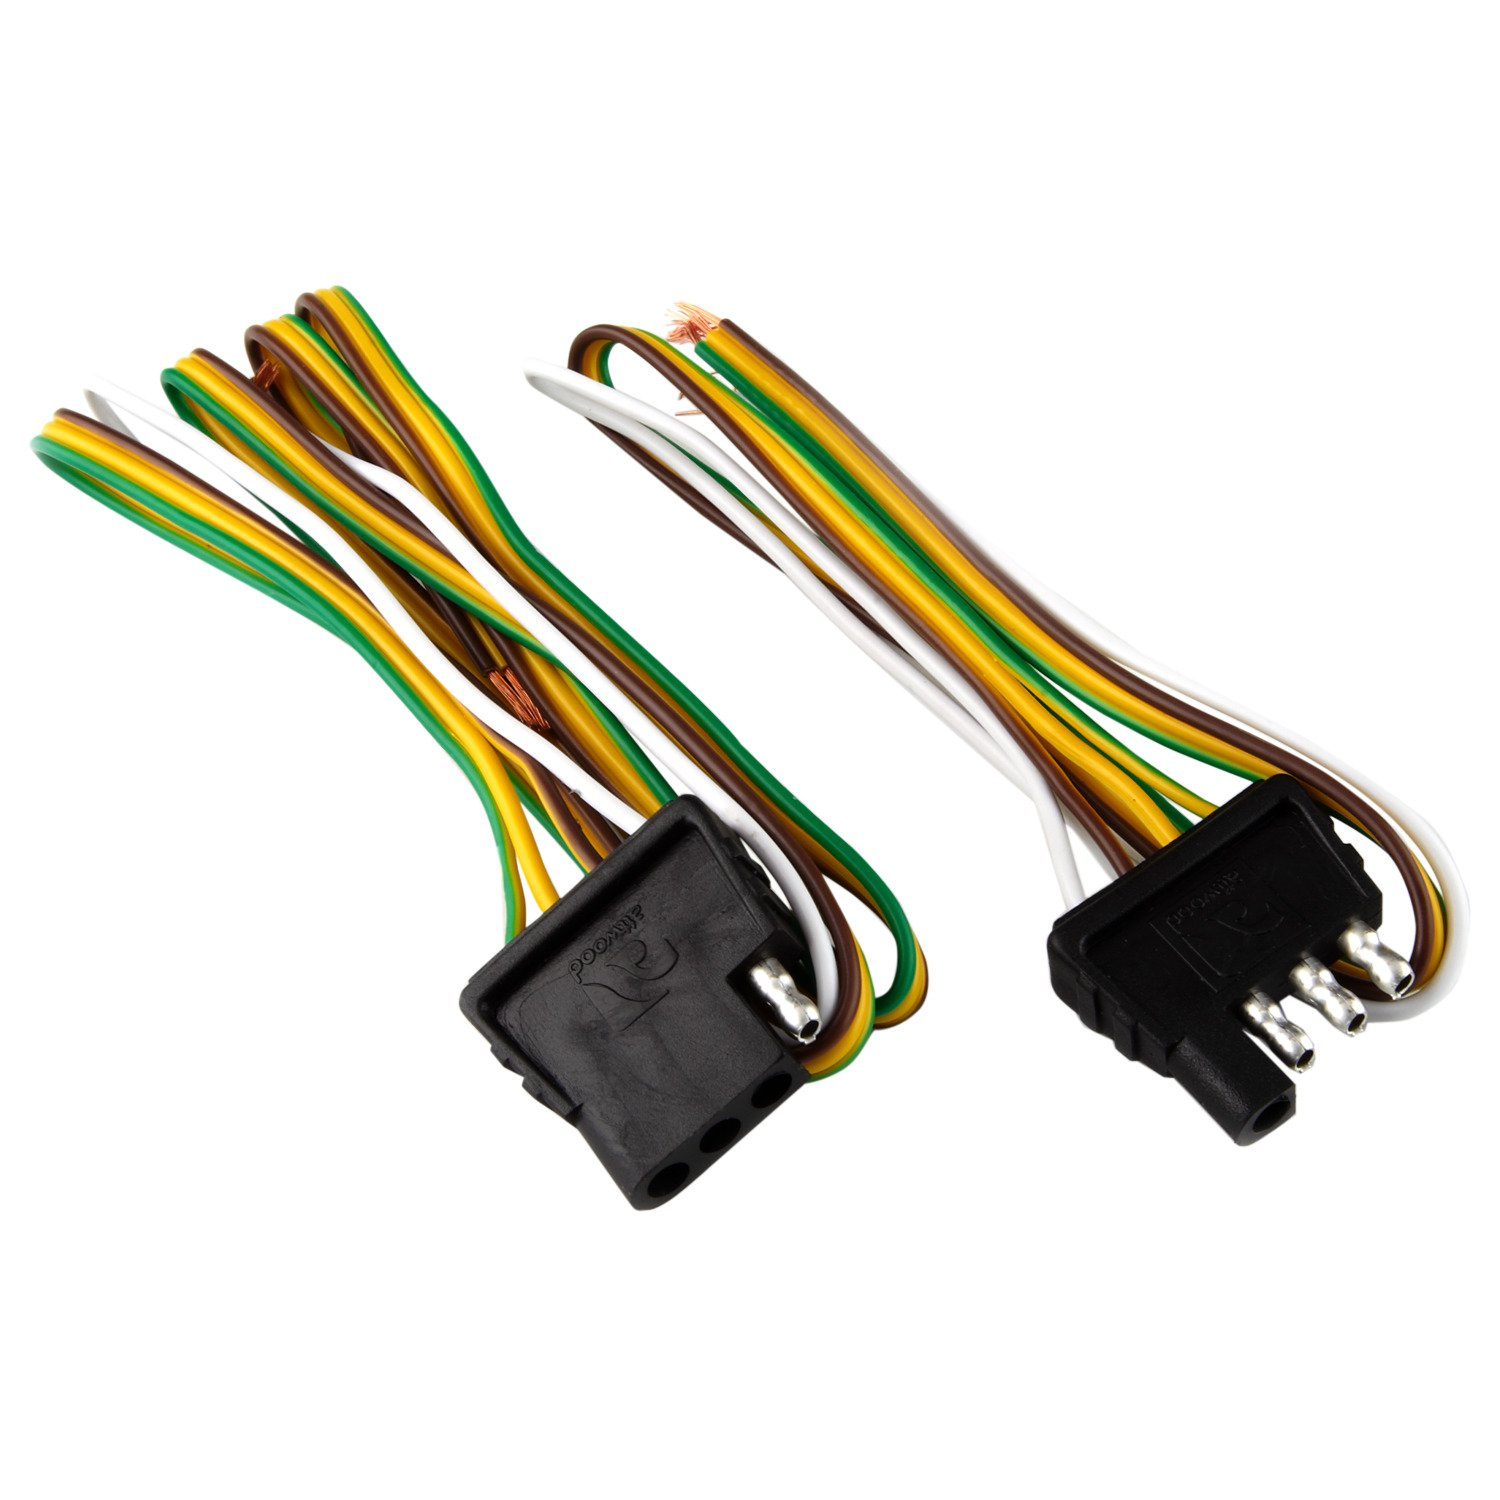 attwood® 4 way flat wiring harness kit for vehicles and trailers Vehicle Specific Trailer Wiring Harness